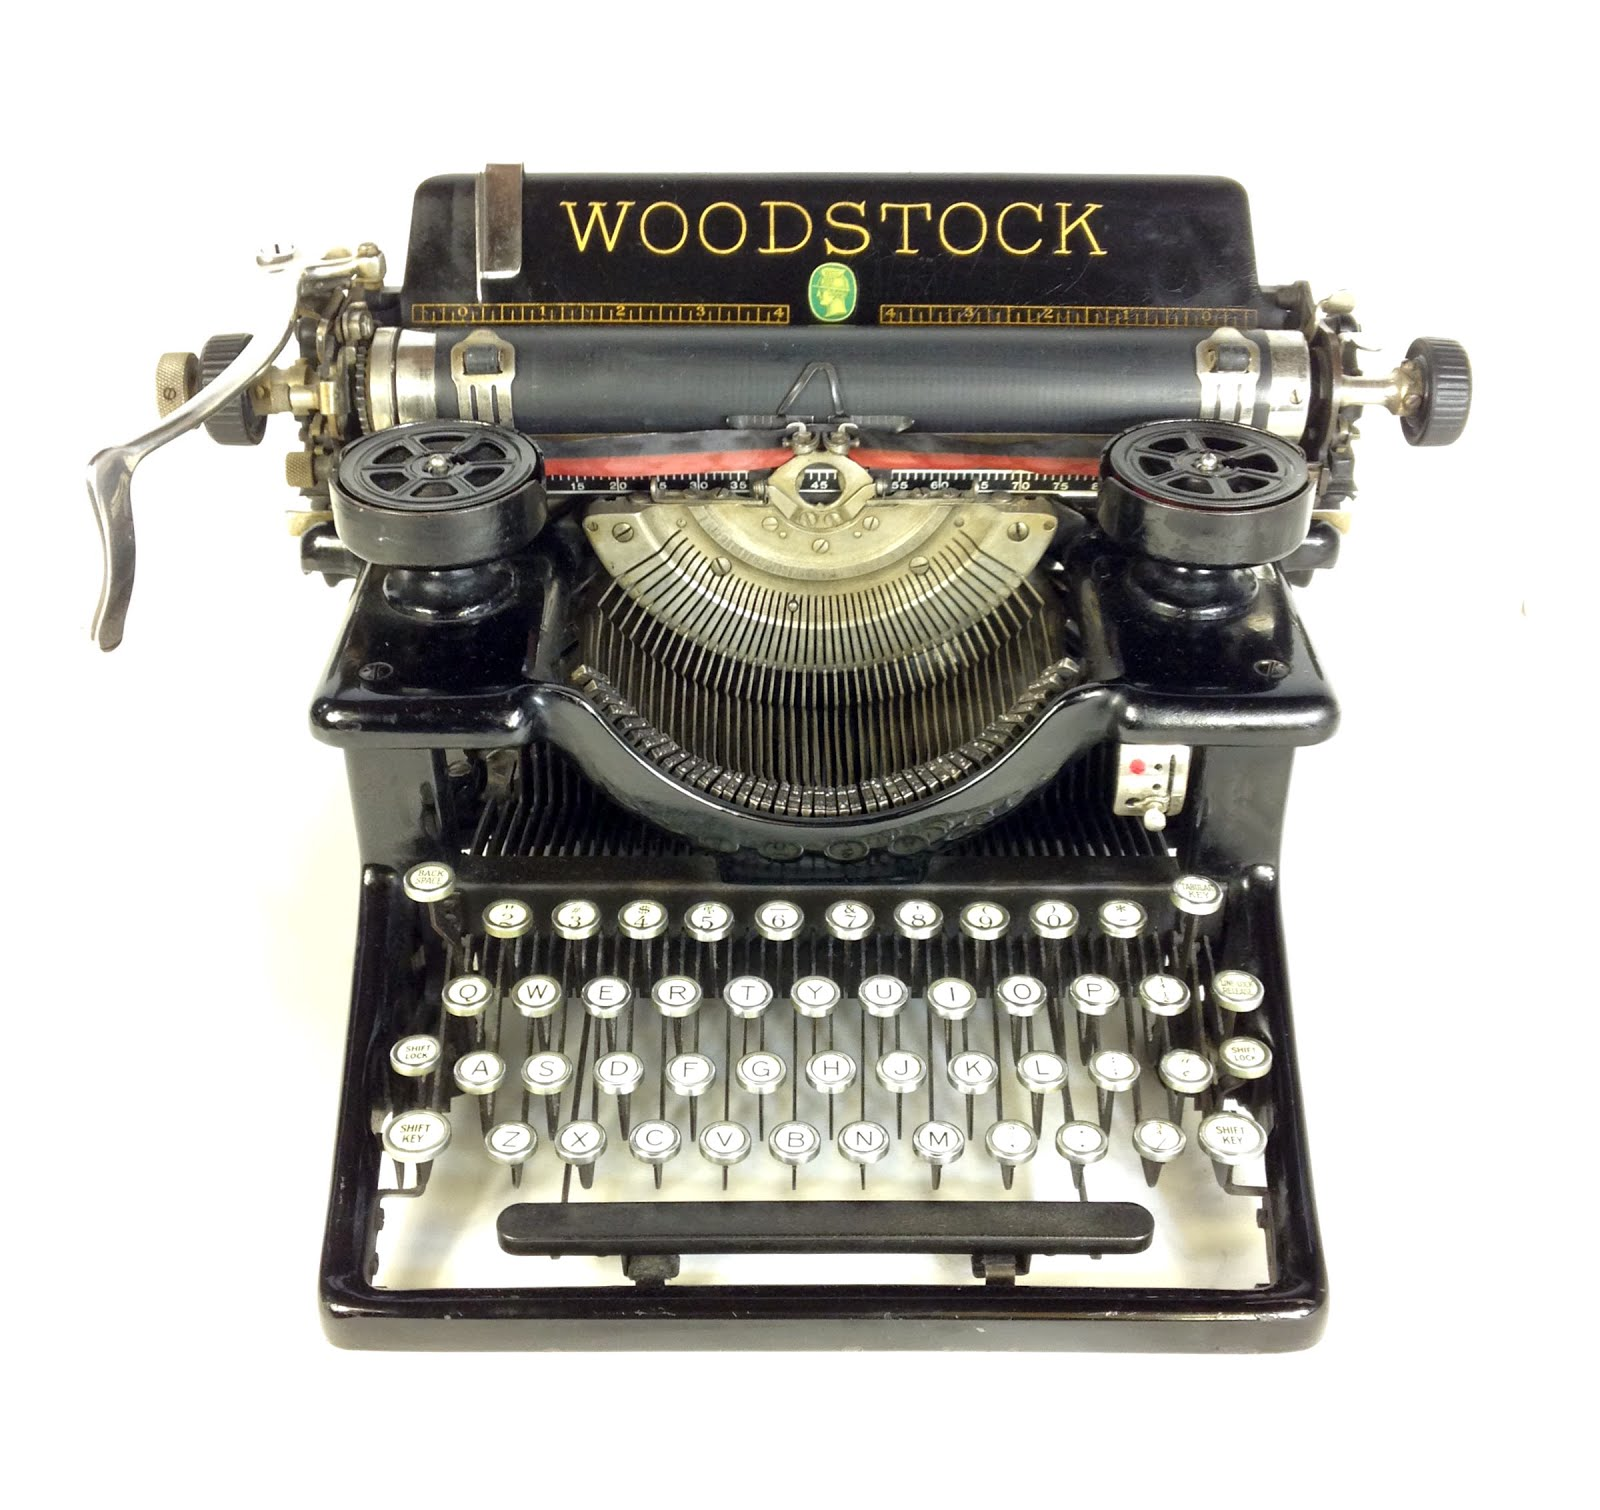 The Typewriter Revolution Blog: A Confused Woodstock